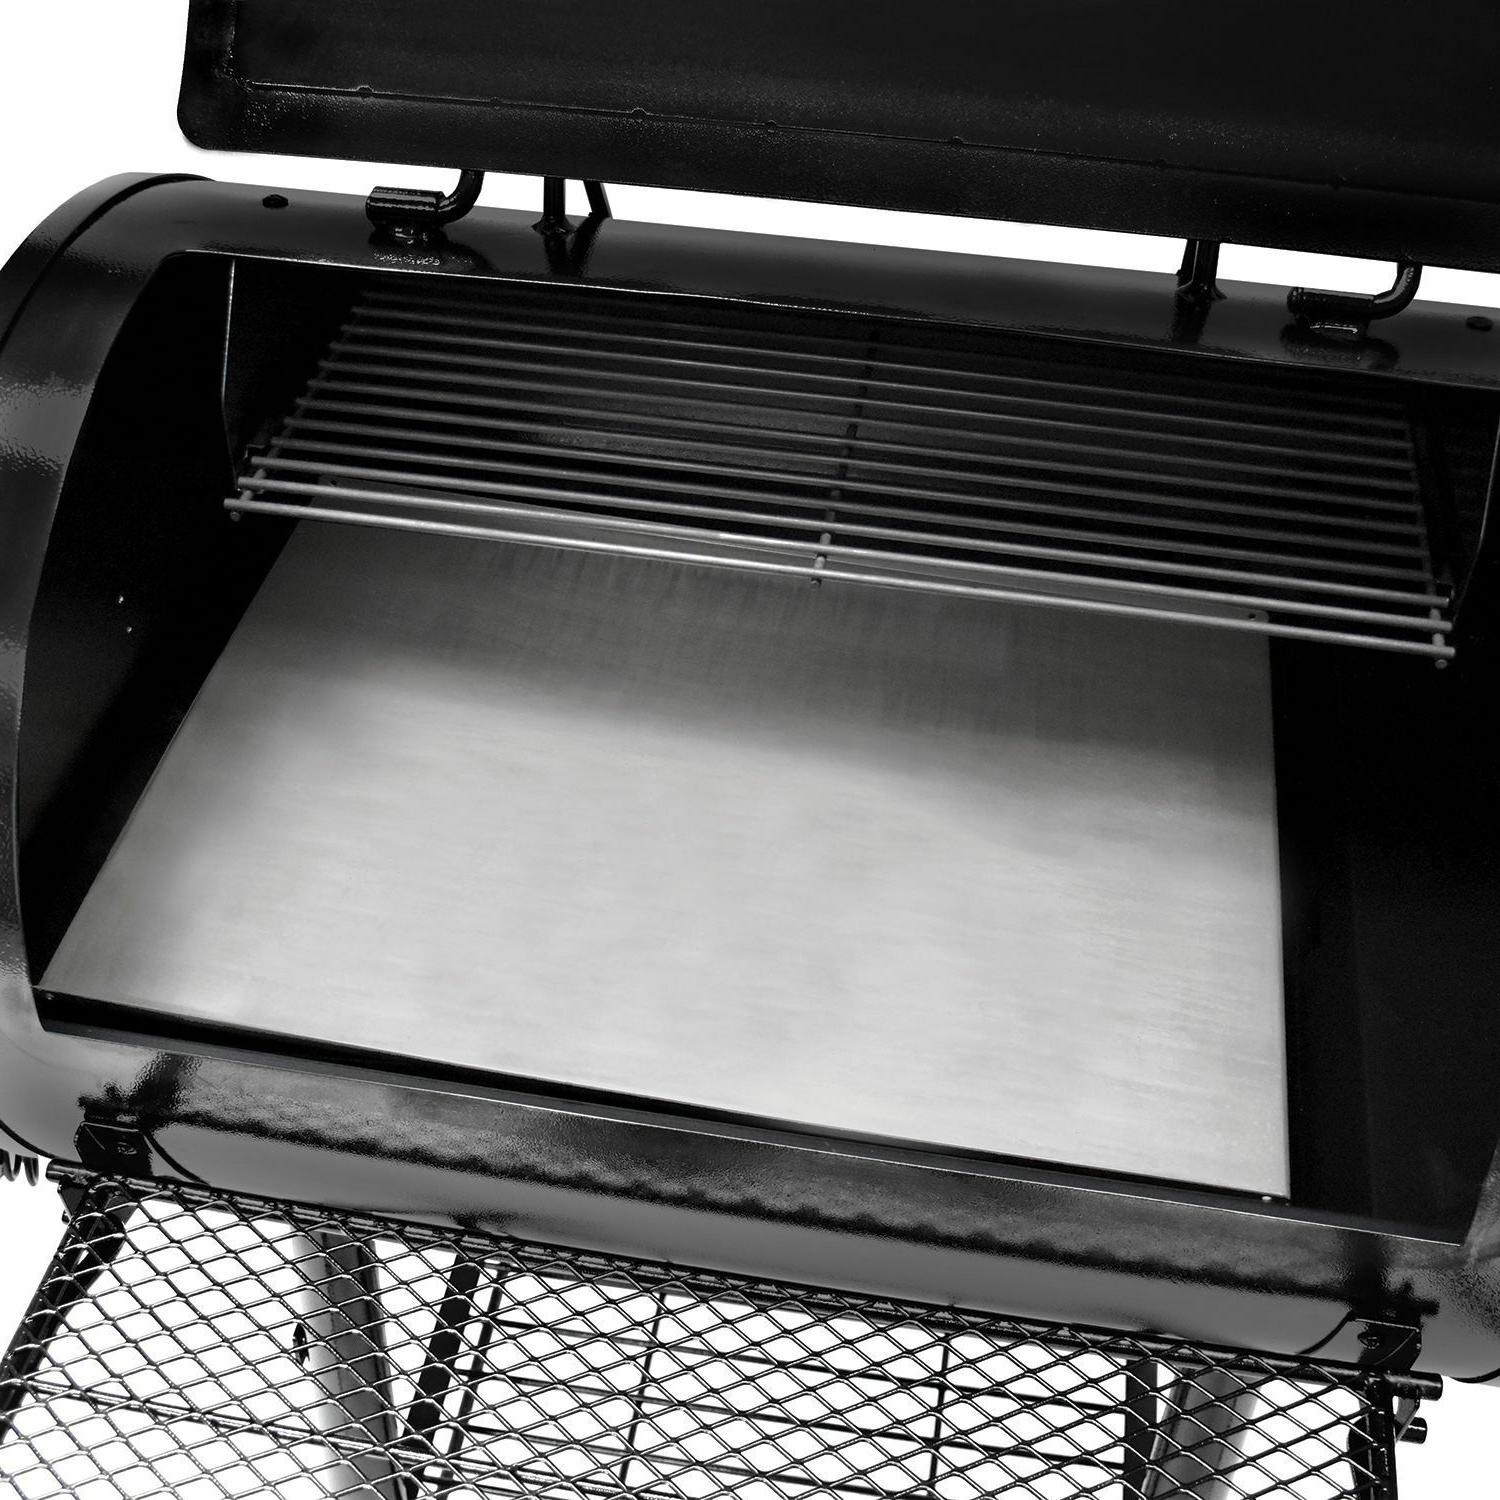 Large Smoker Grill 751 in Cooking